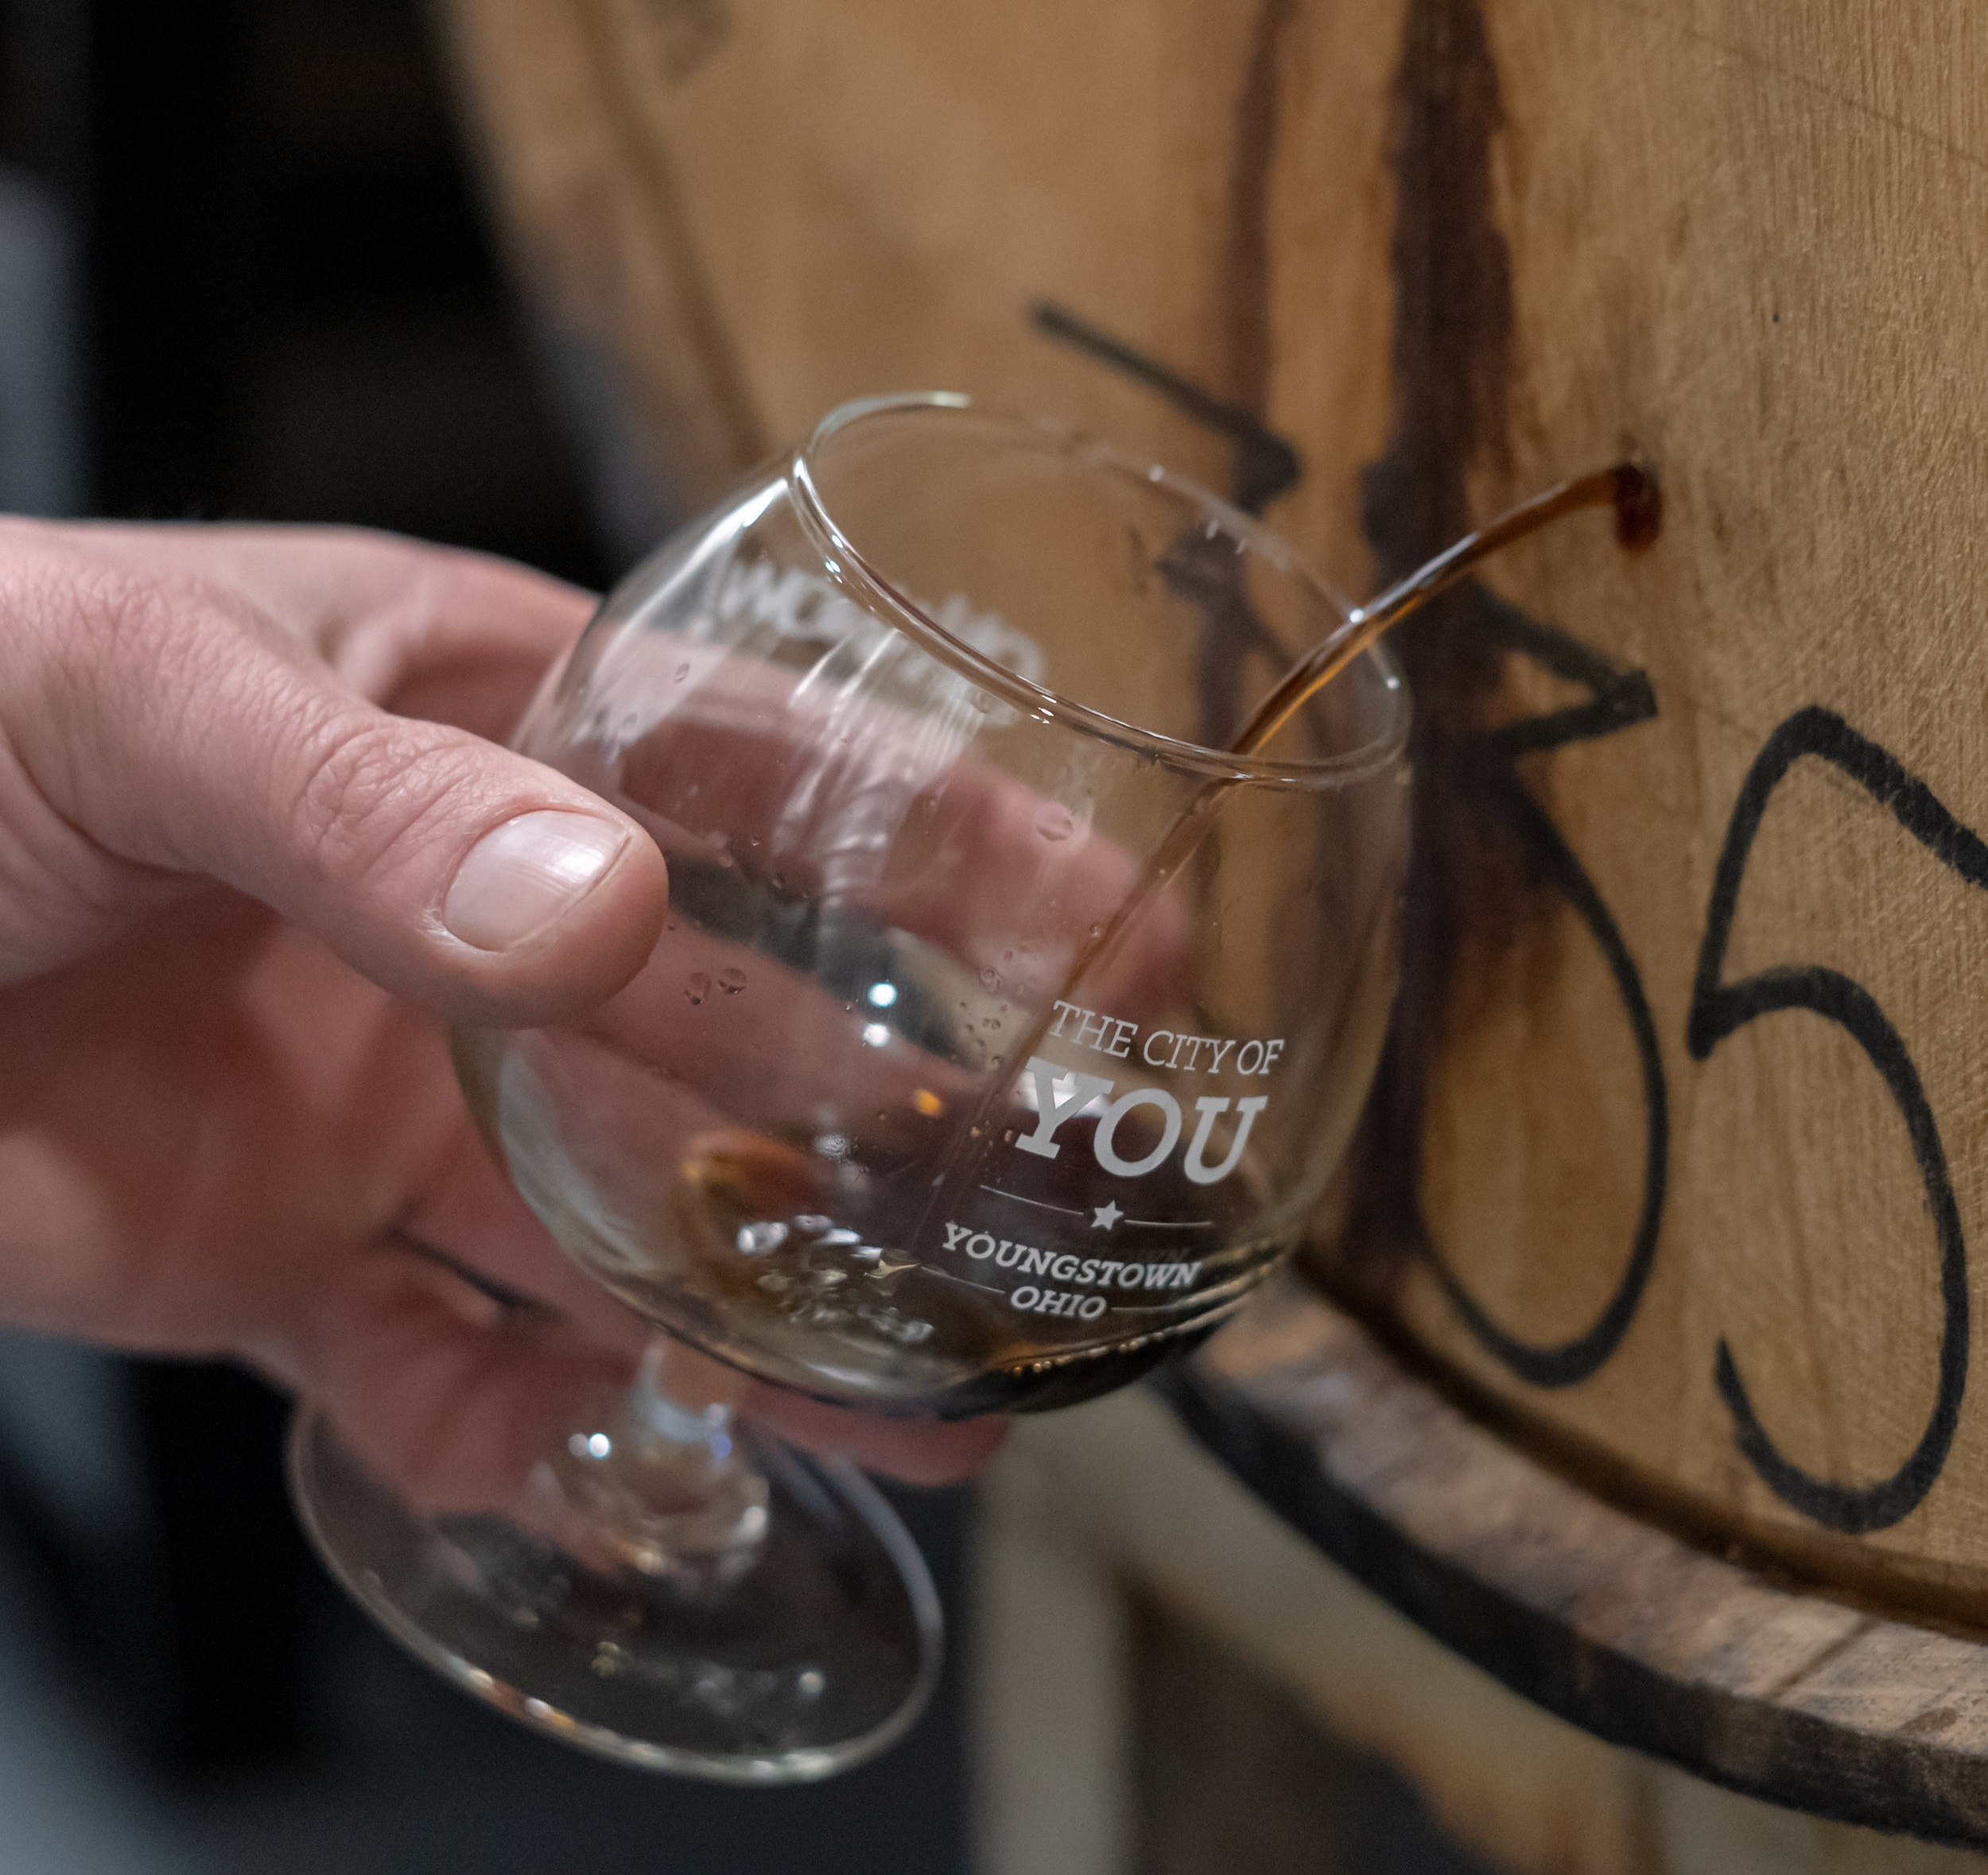 BARREL AGED BEERS, BARREL SOURS - We kicked off our barrel program late 2018 and have many beers aging and souring wine, whiskey, gin, scotch, tequila barrels and more. These beers are only available at Birdfish and do not go out for distribution.